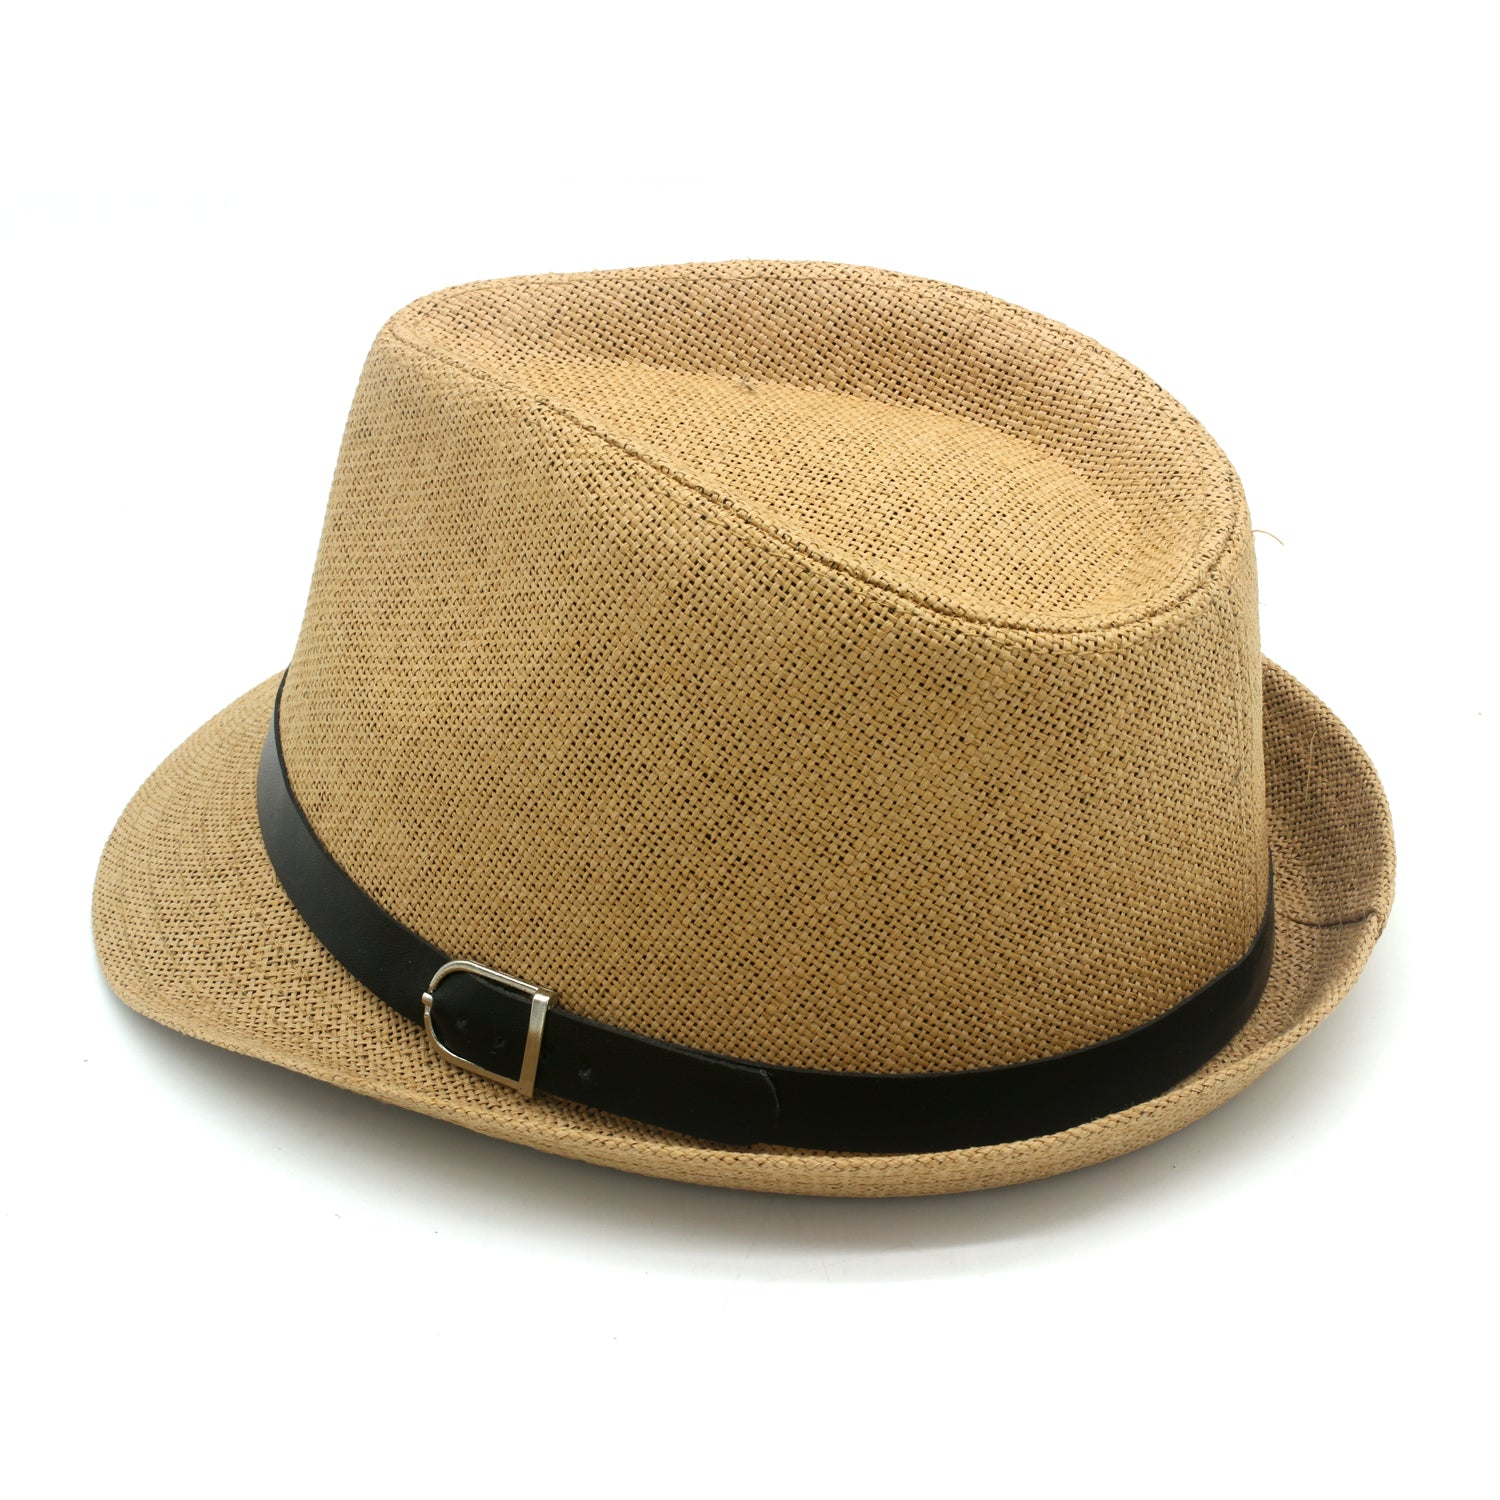 Tan Summer Fedora